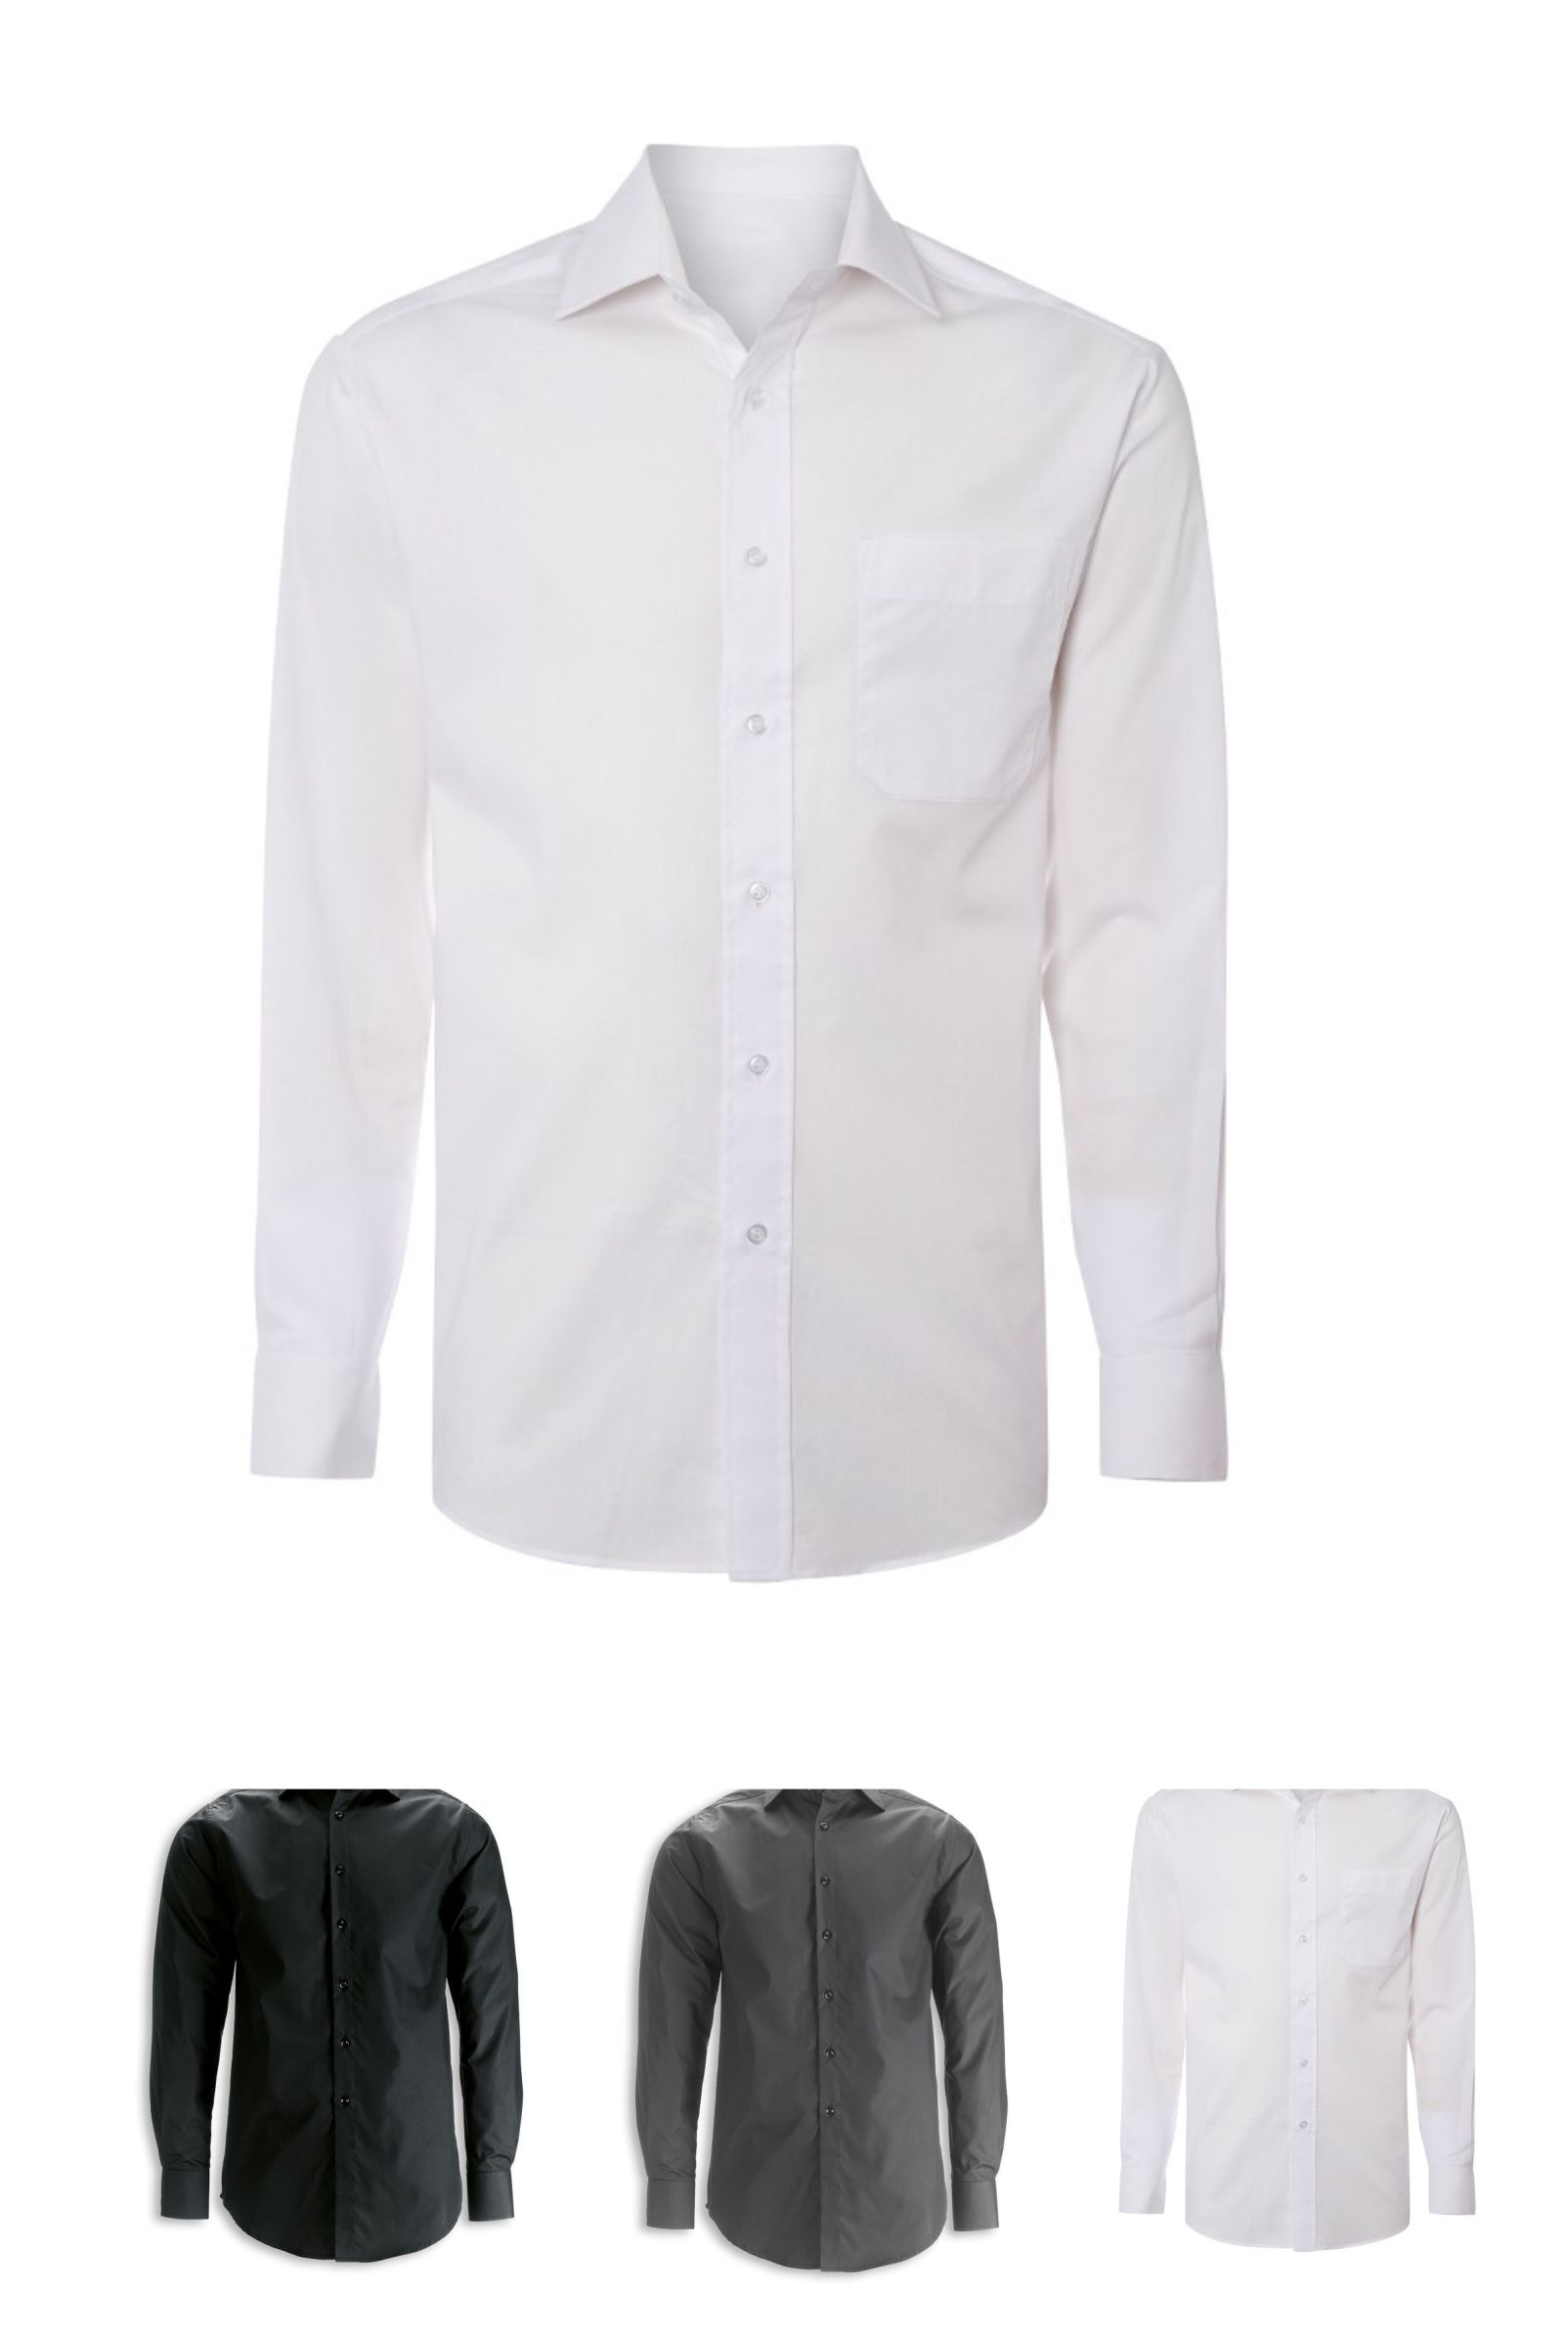 NM49 Men's Long Sleeve Stretch Shirt